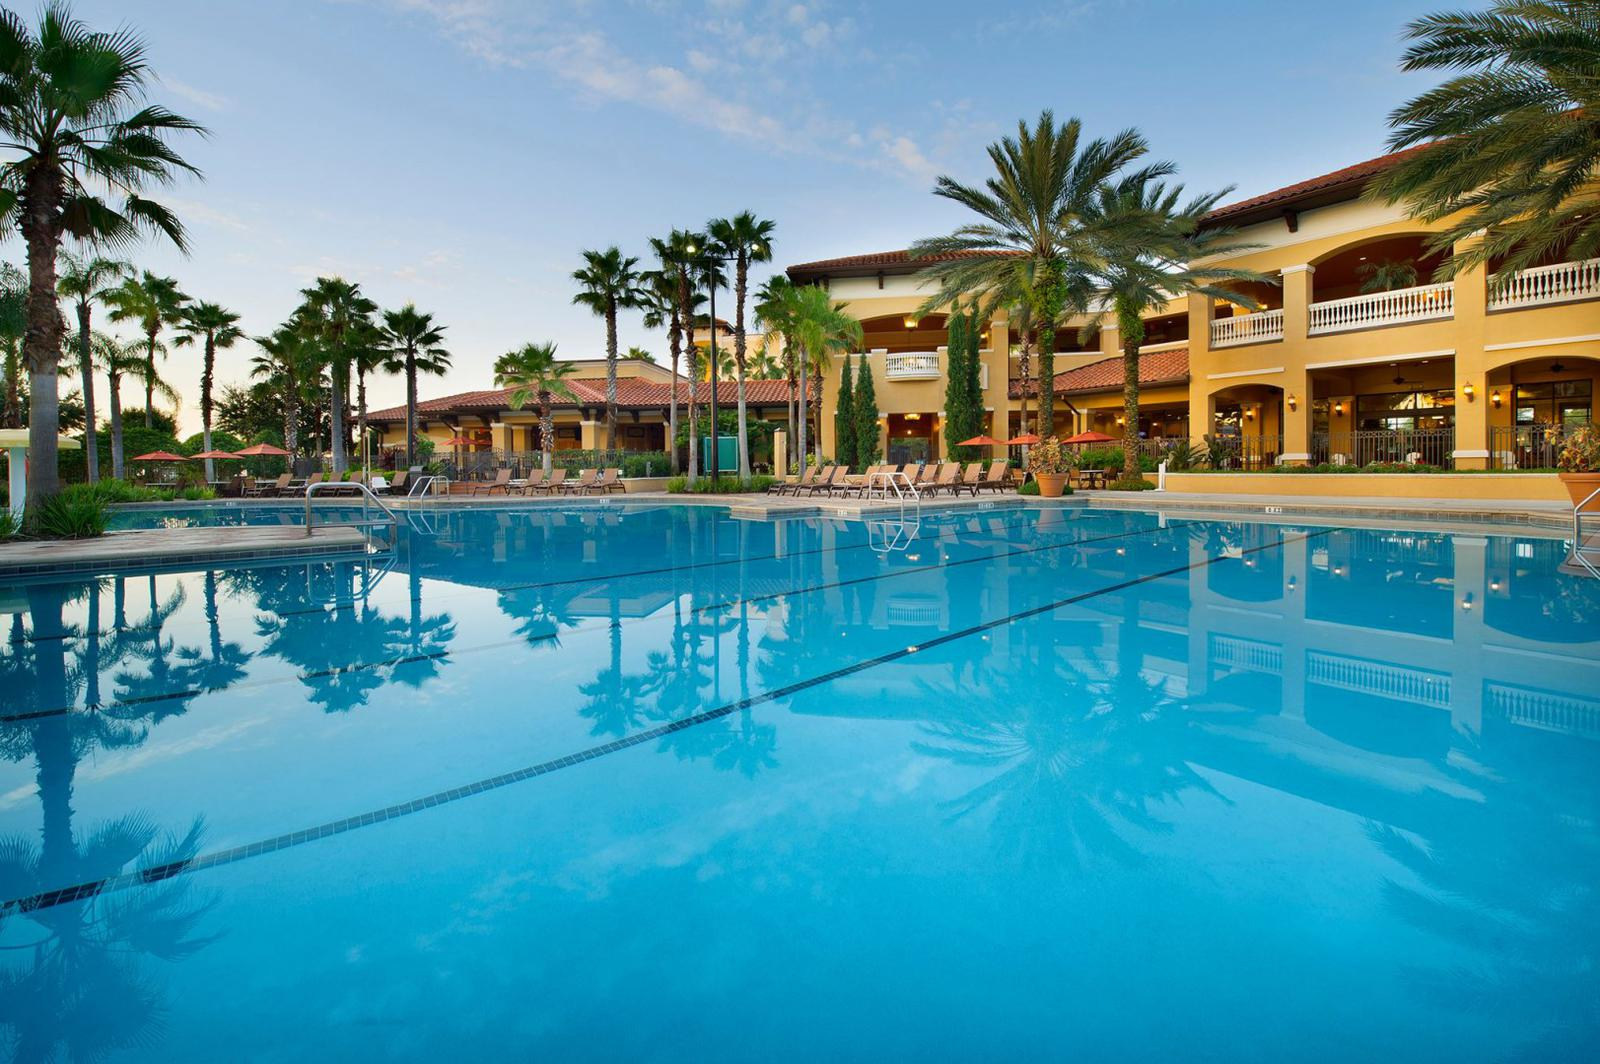 The best family hotel pools in orlando florida room5 for Best hotel pools